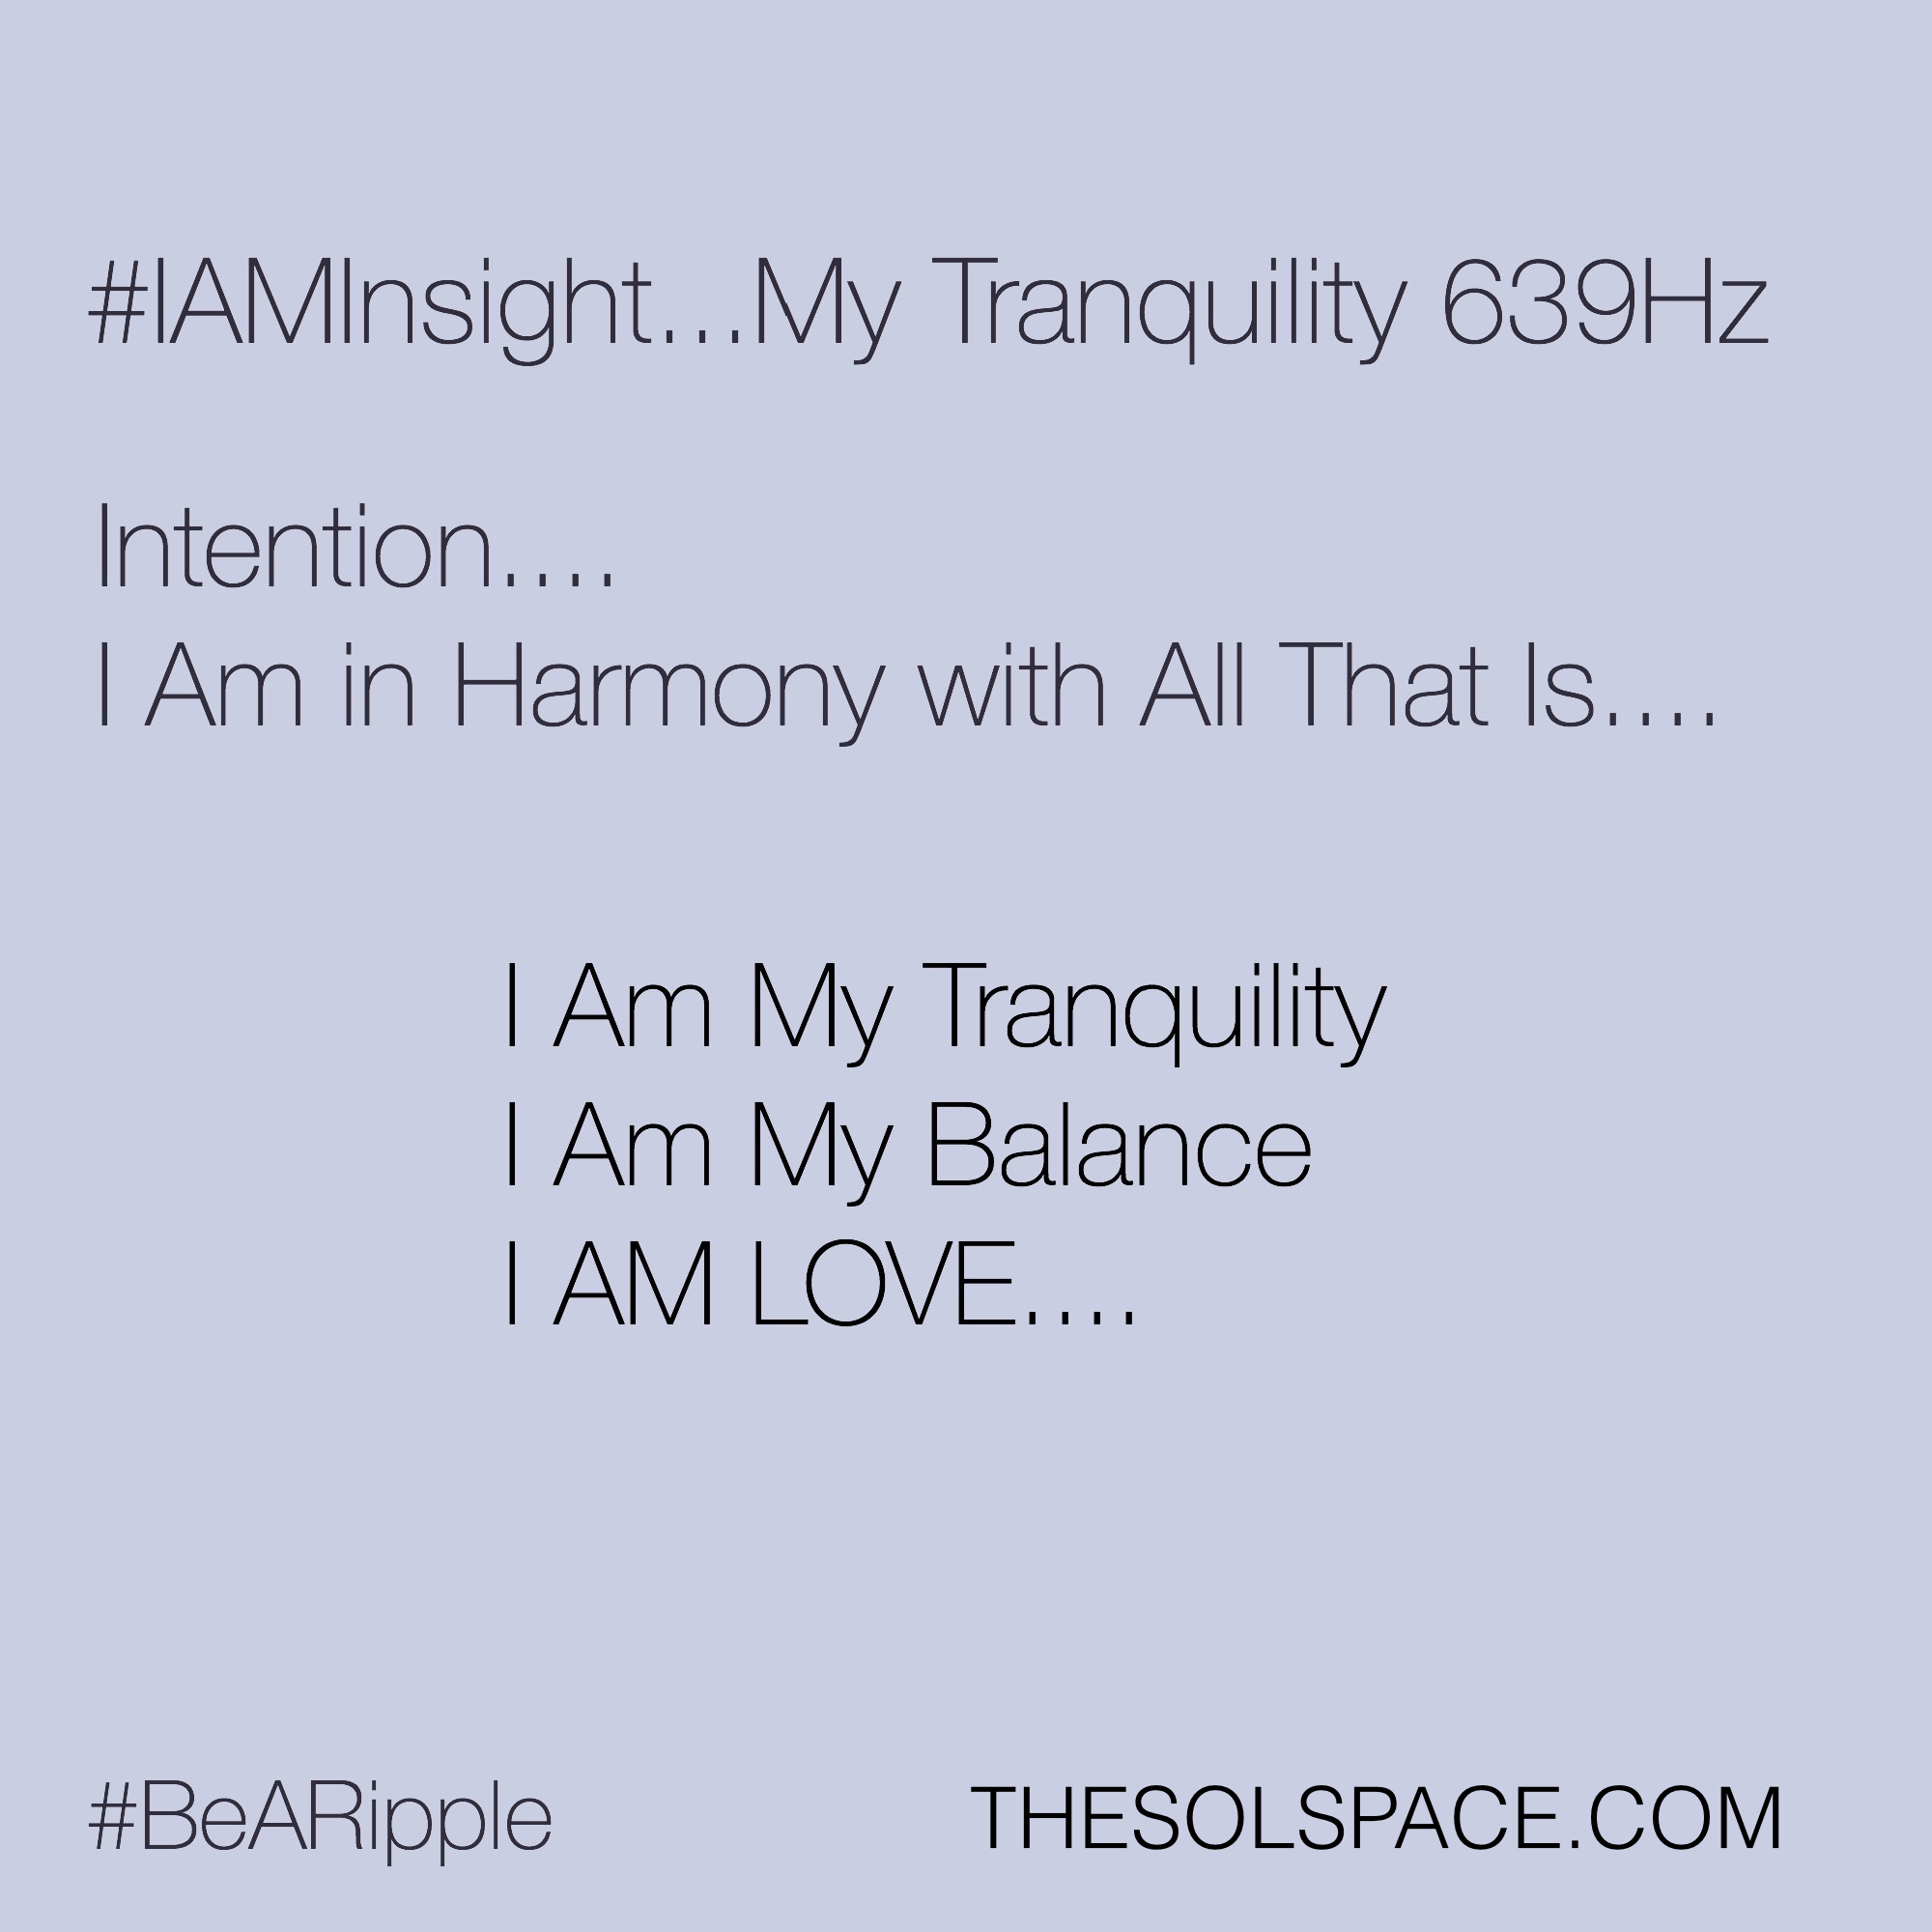 #BeARipple..My Tranquility 639Hz @theSOLspace